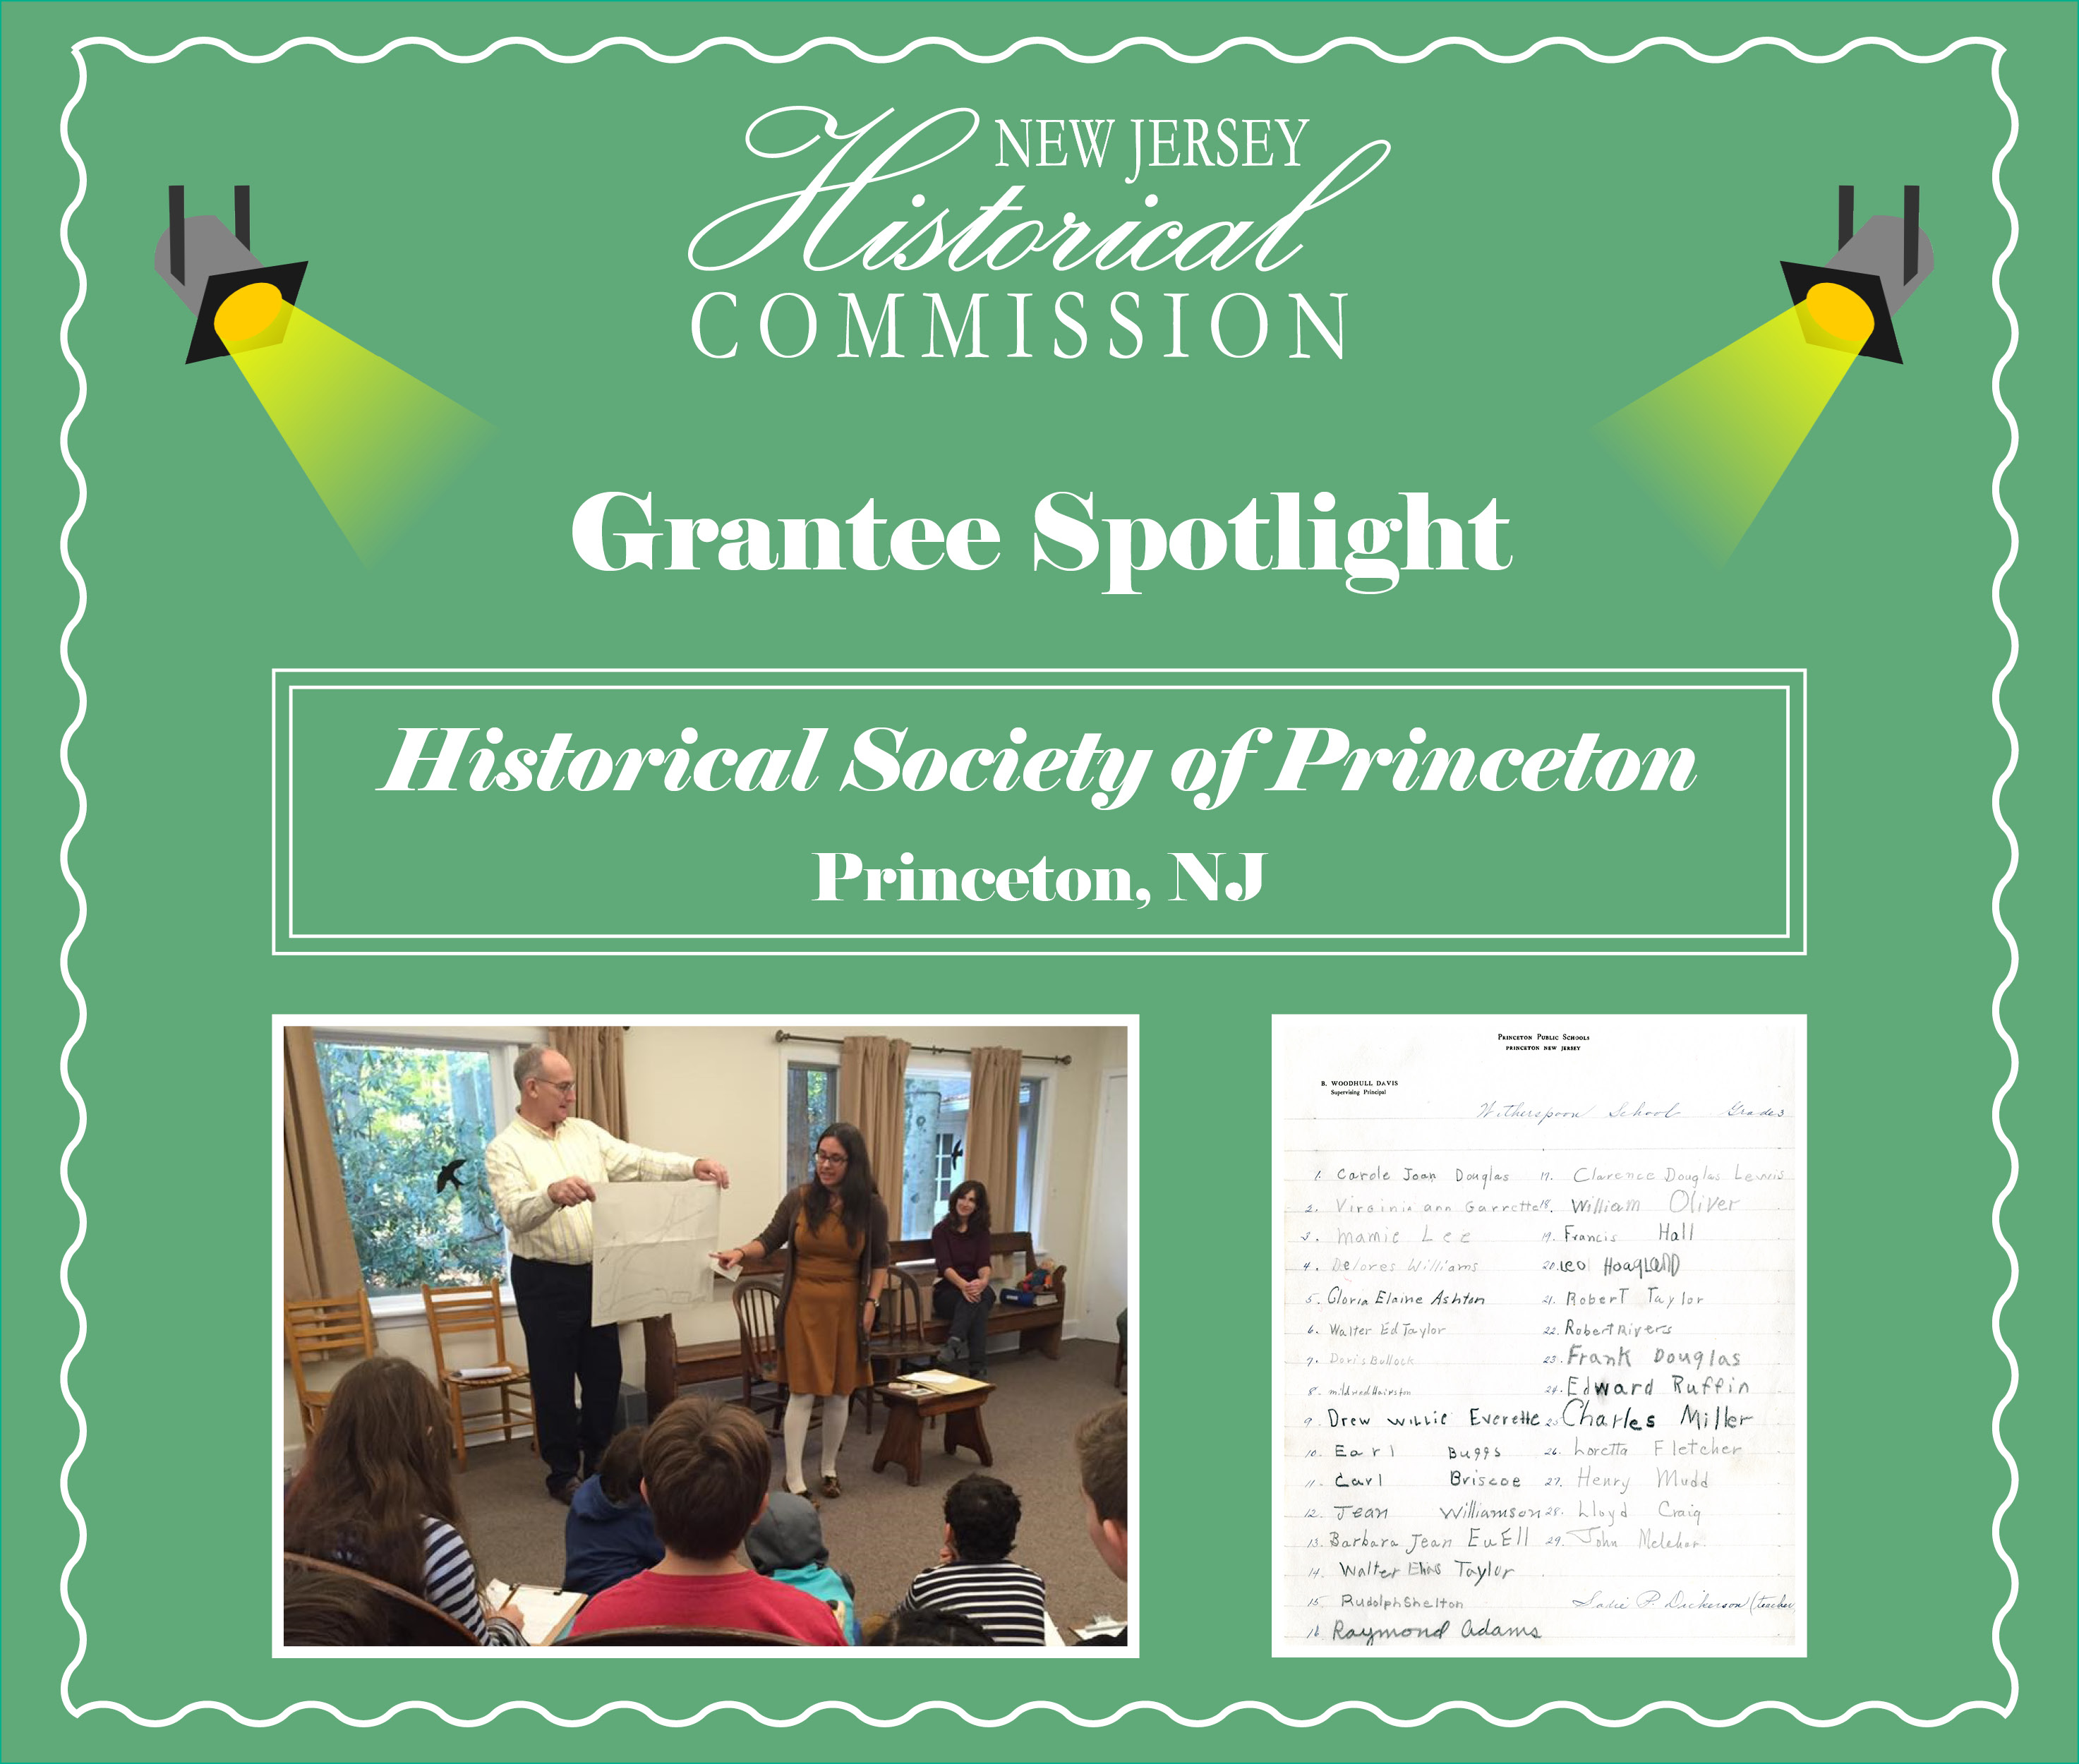 New Jersey Historical Commission Grantee Spotlight: Historical Society of Princeton